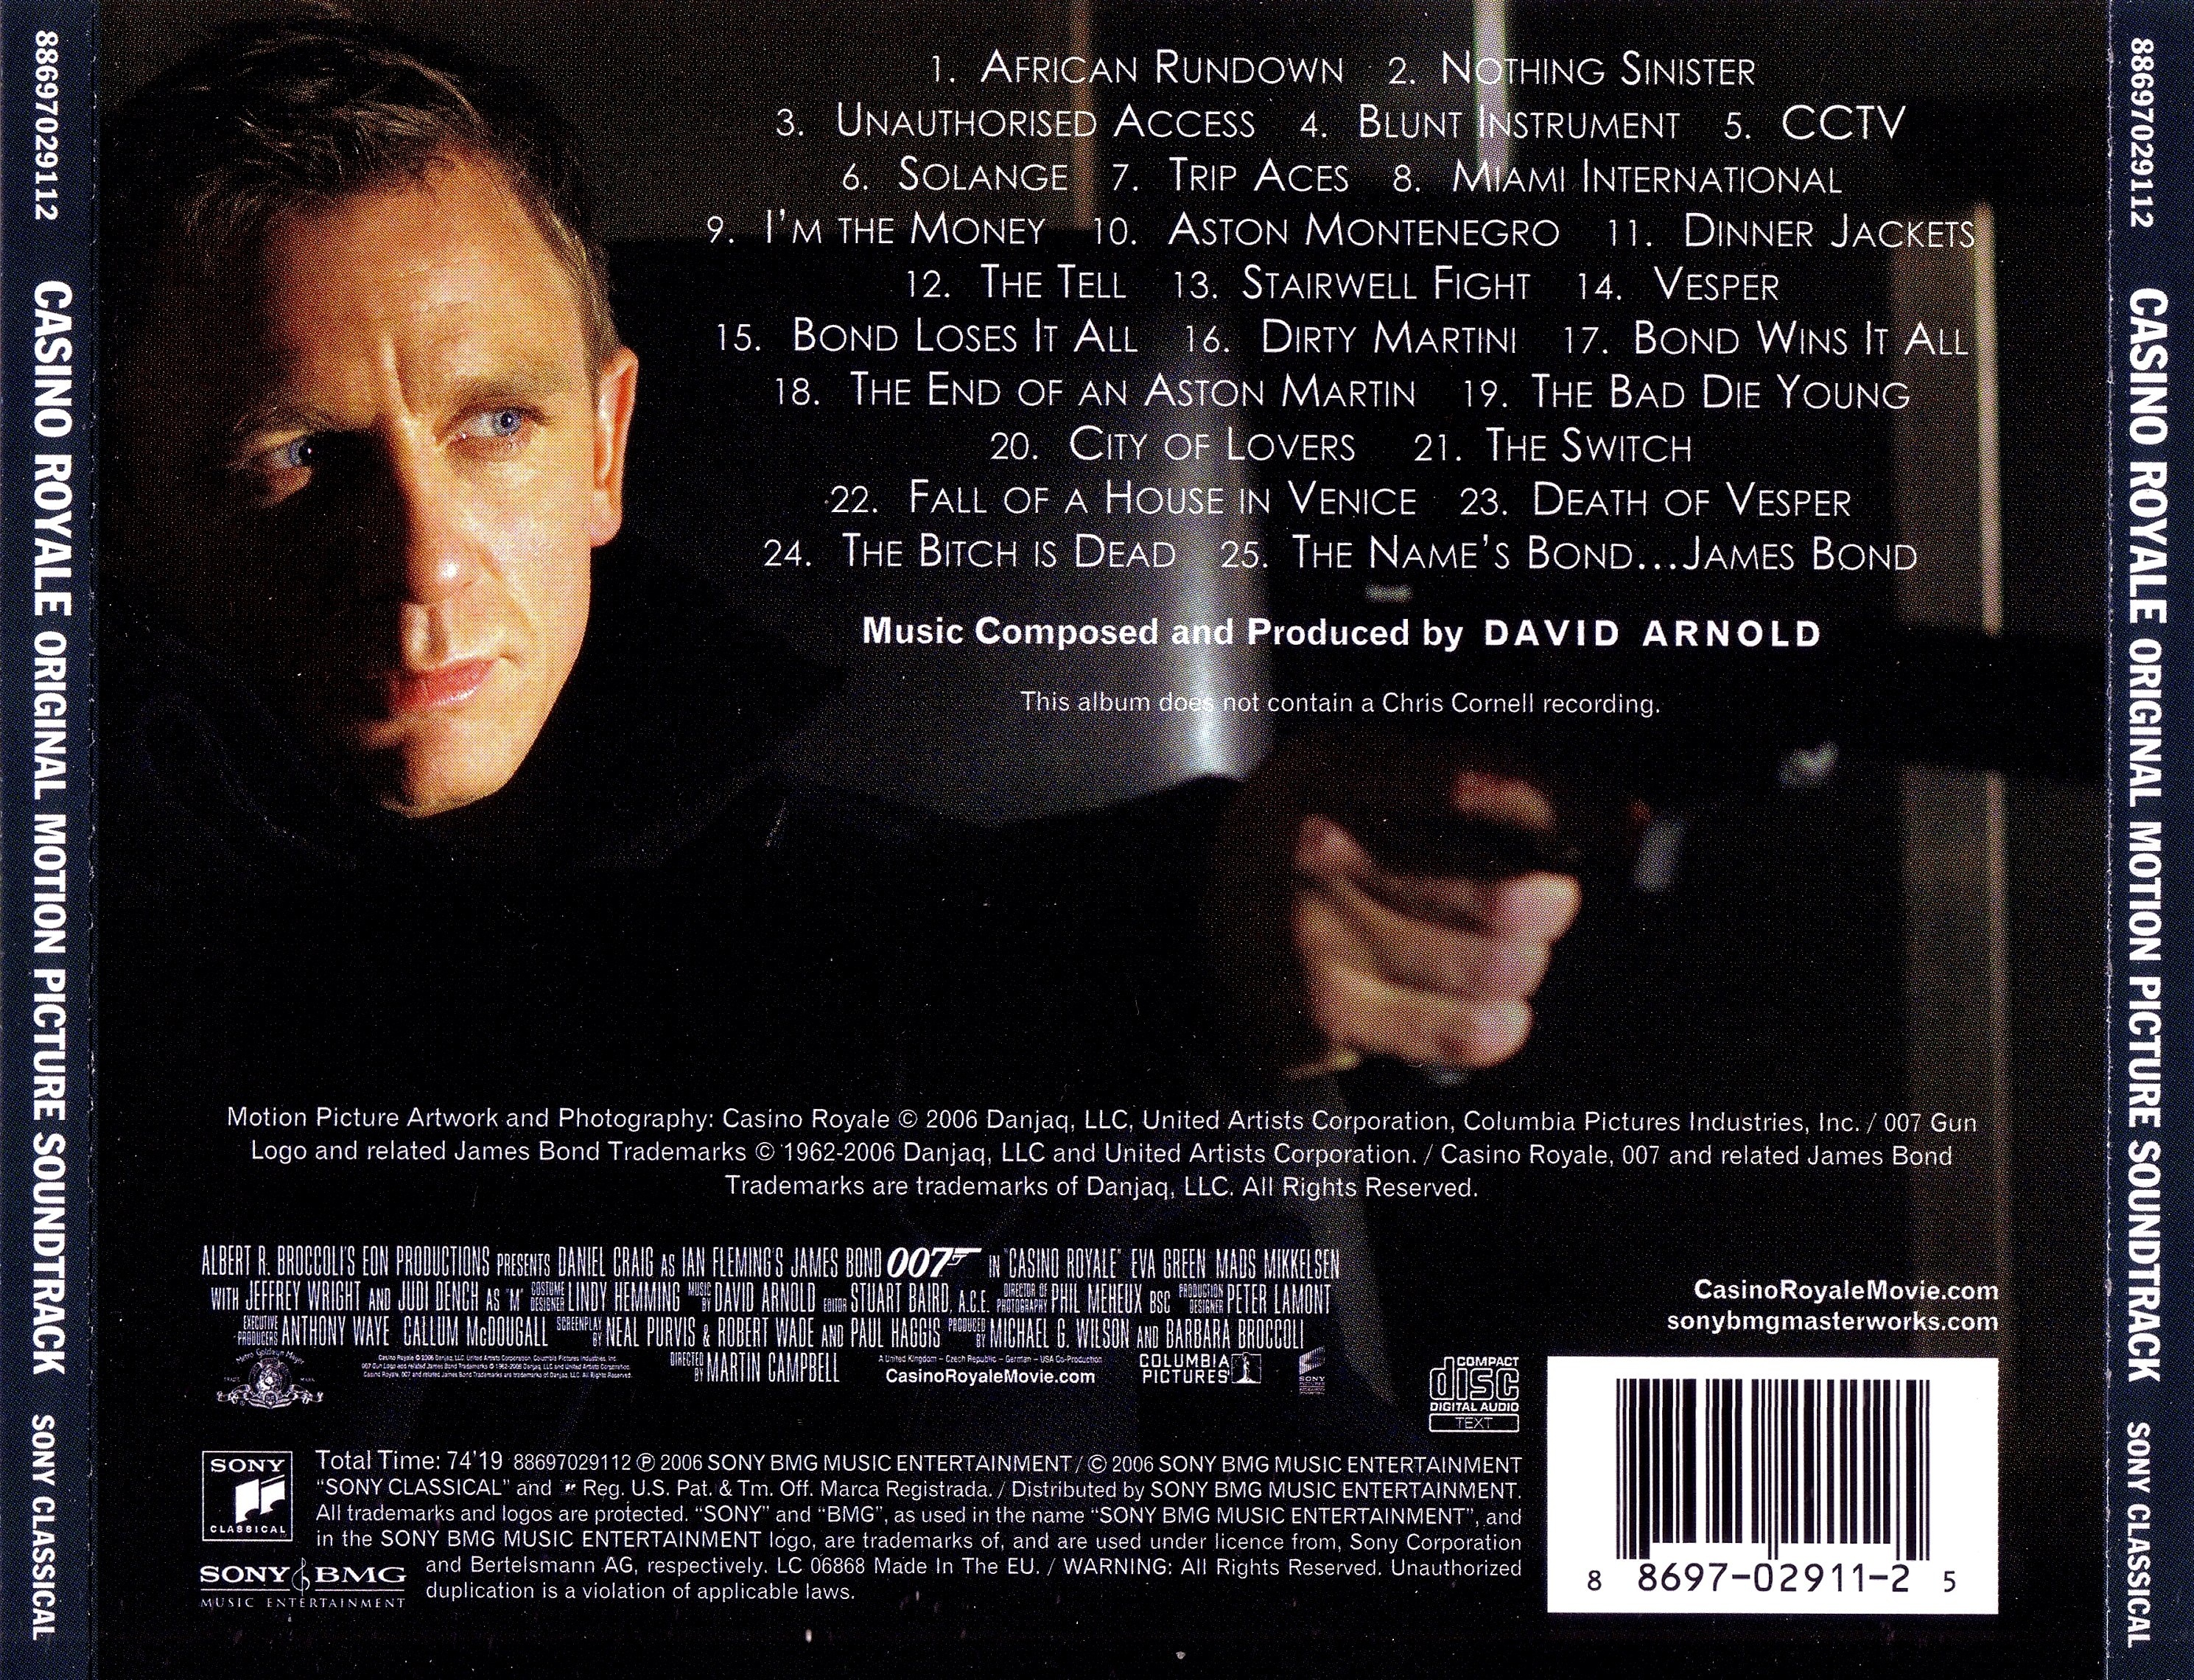 Bond casino james royale soundtrack zynga casino games